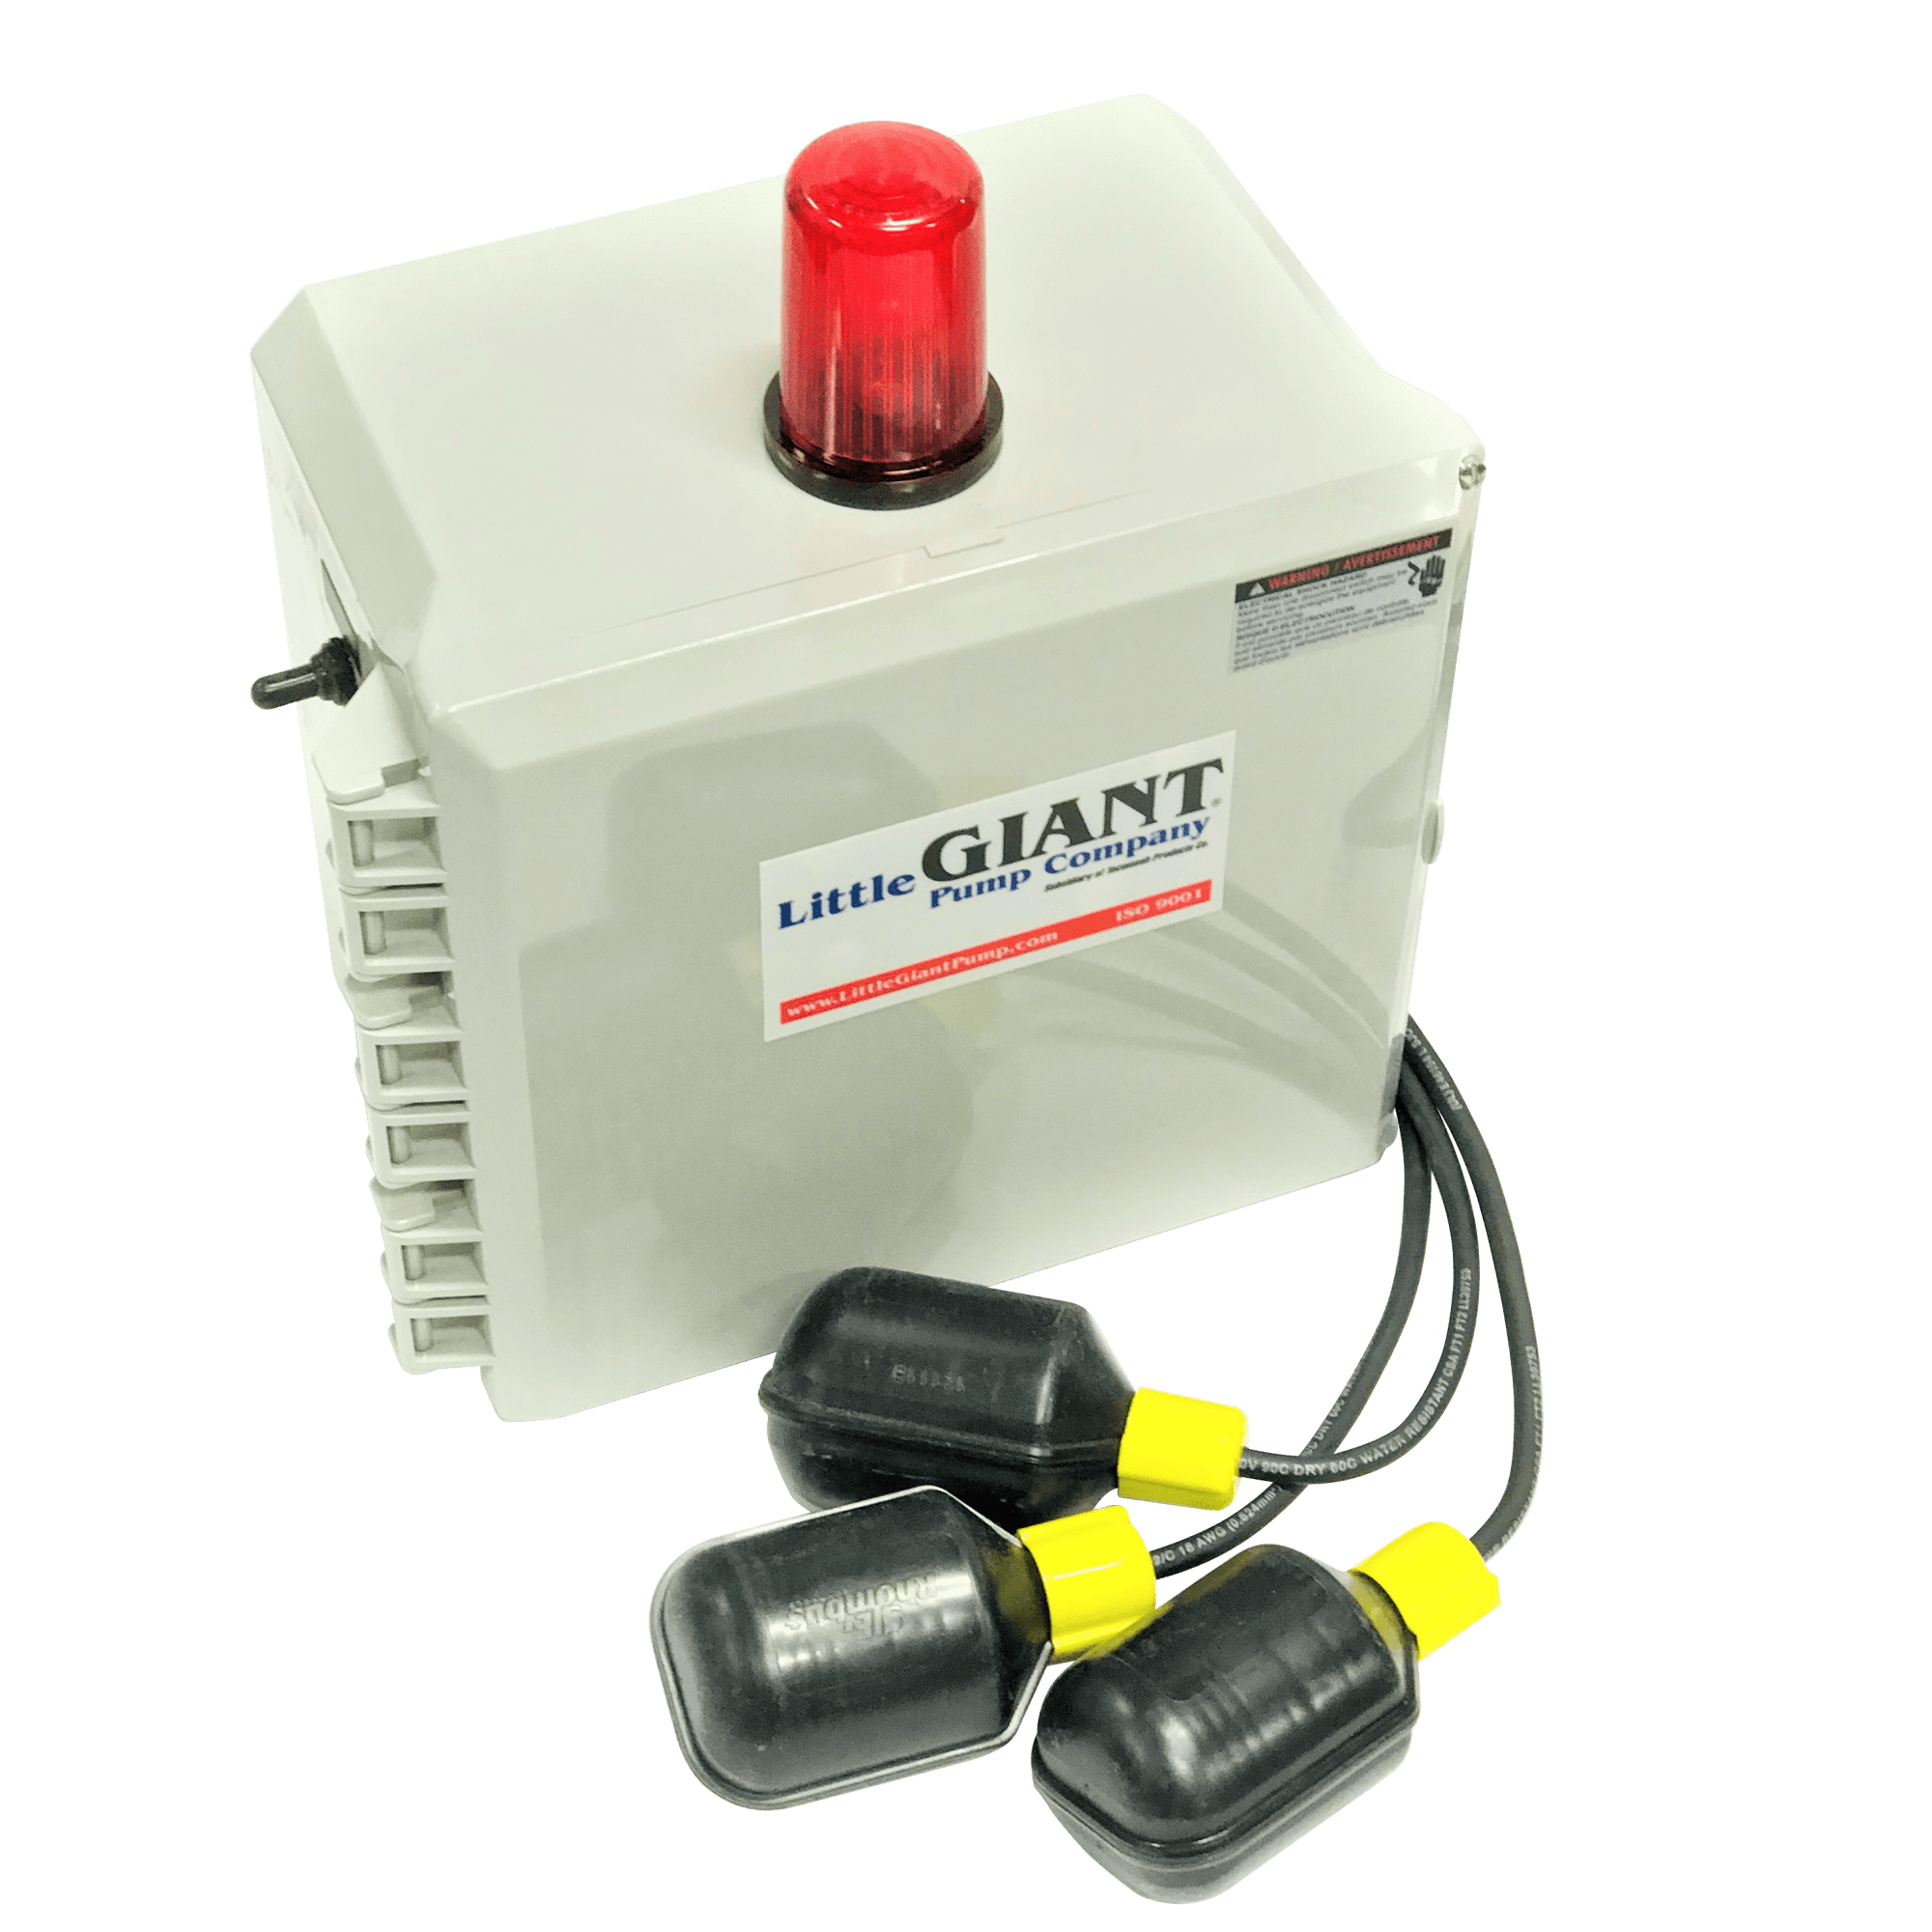 hight resolution of little giant 513258 single phase indoor outdoor duplex alarm system and pump control